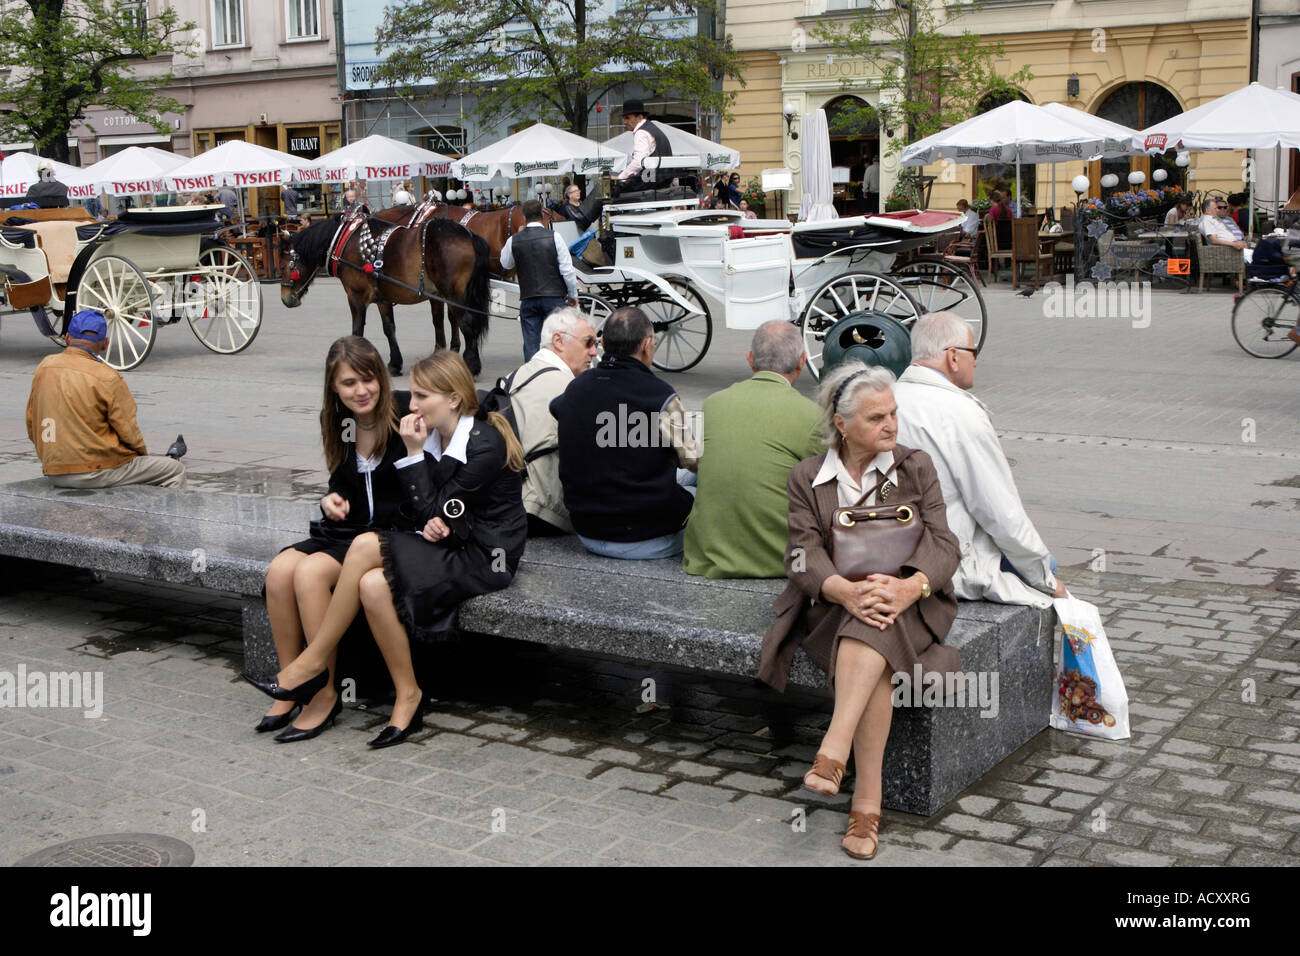 People in the Main Market Square in Cracow, Poland Stock Photo